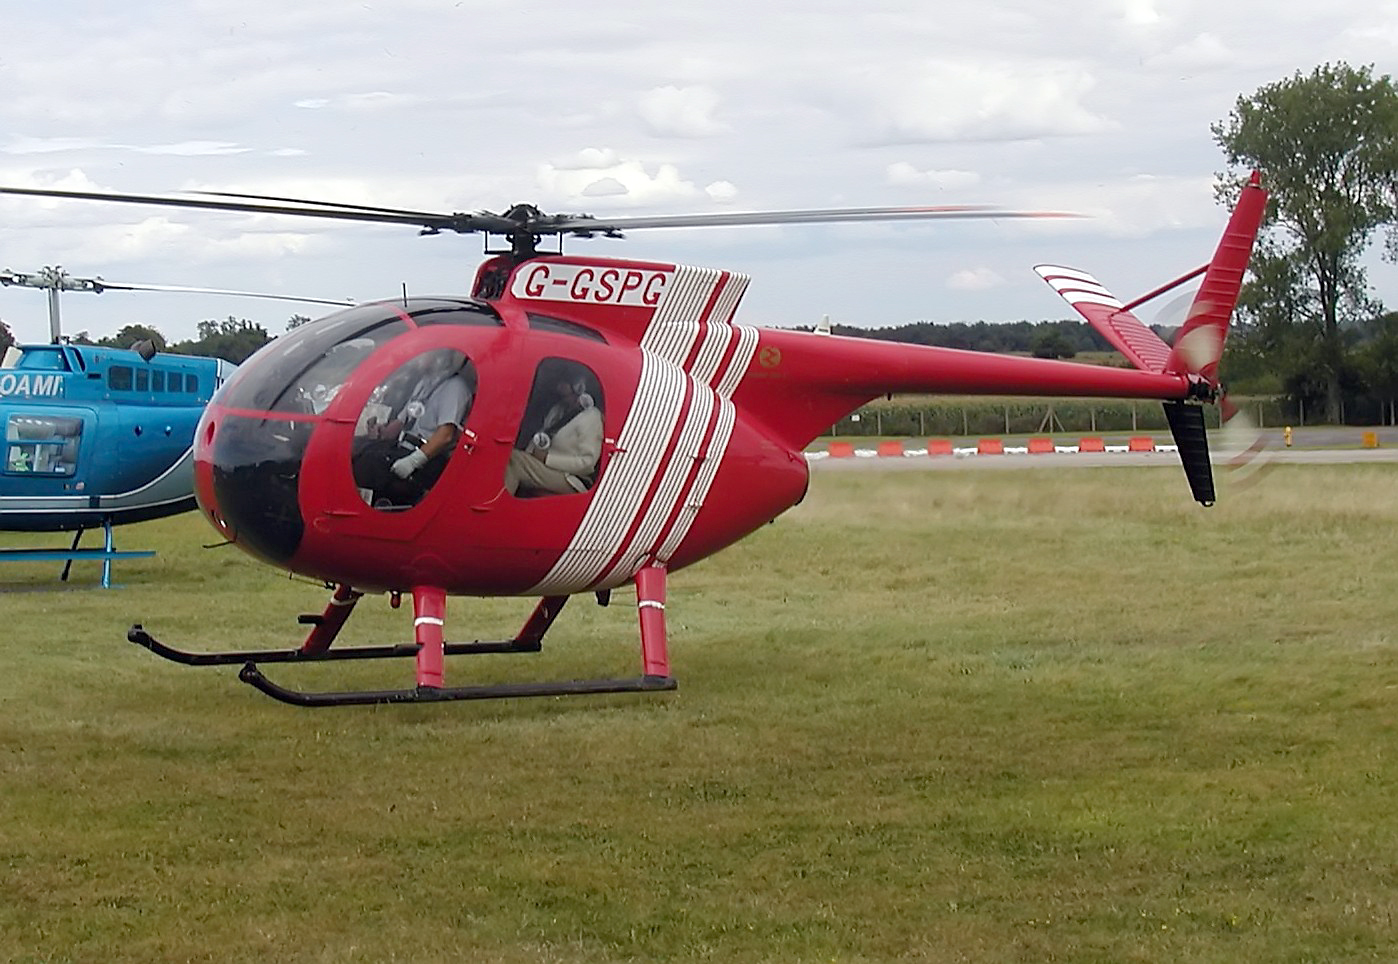 md helicopters 500 with File Hughes500 G Gspg Arp on File notar helicopter further Top  E7 9B B4 E5 8D 87 E9 A3 9E E6 9C BA E6 A8 A1 E5 9E 8B E4 B8 89 E8 A7 86 E5 9B BE likewise File Hughes500 g Gspg arp moreover Avh6 furthermore Philippine Air Force To Receive Aw 109e Helicopters By End Of 2015.